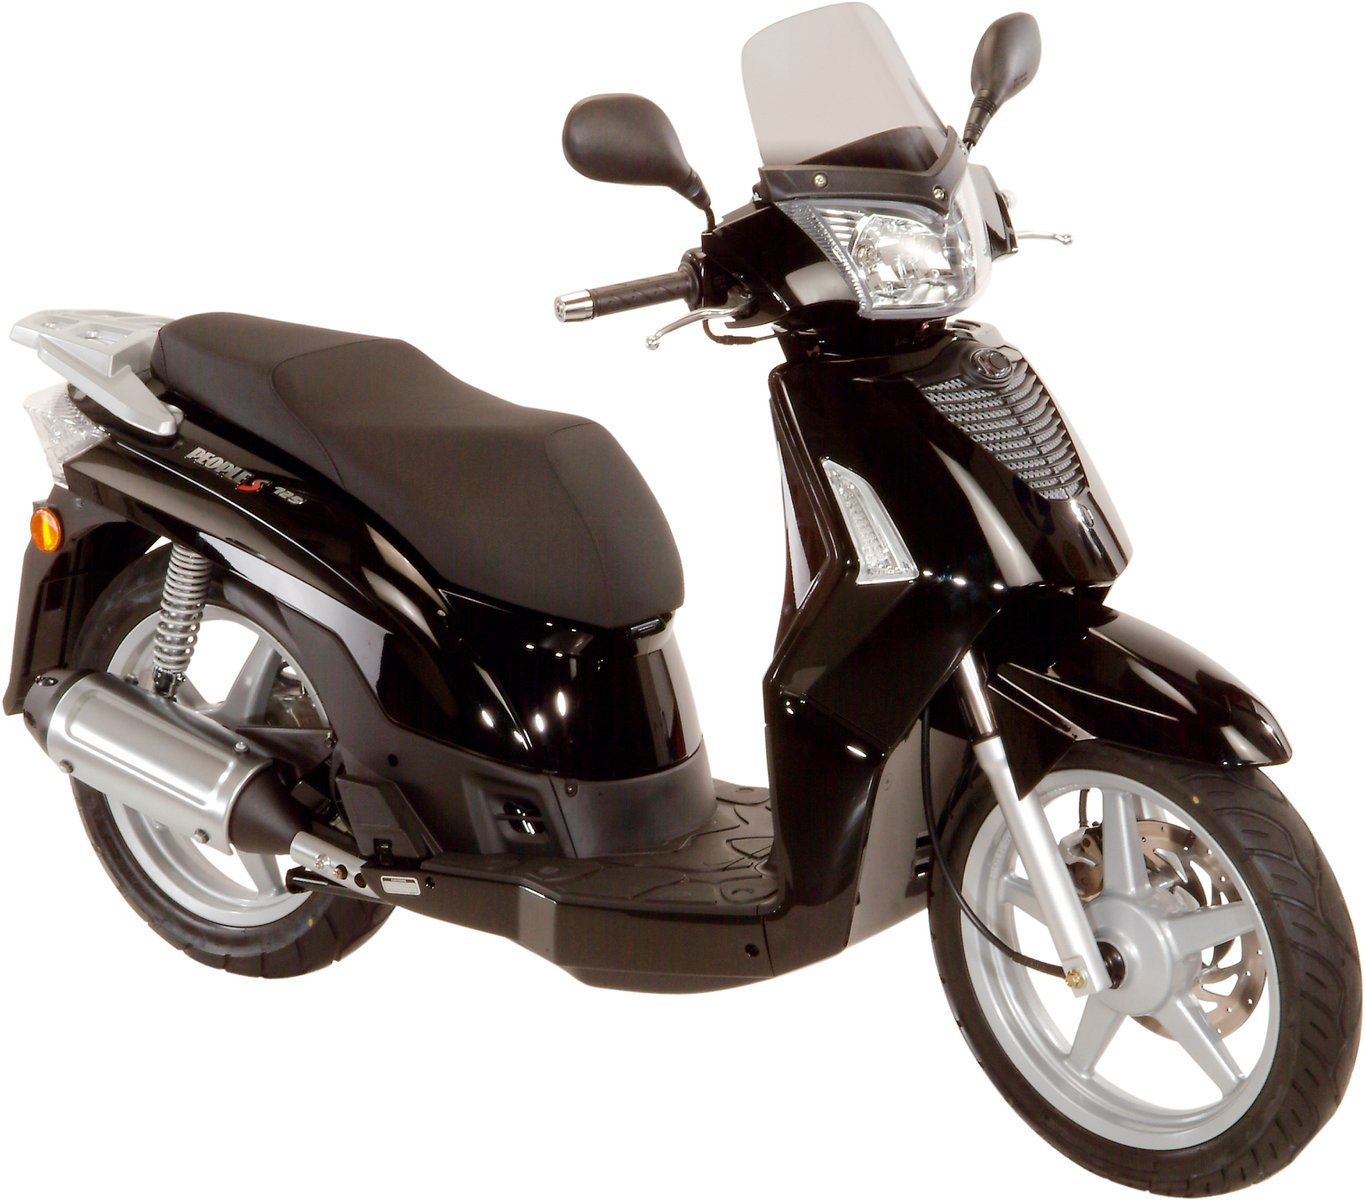 Kymco Grand Dink S 125 images #102199